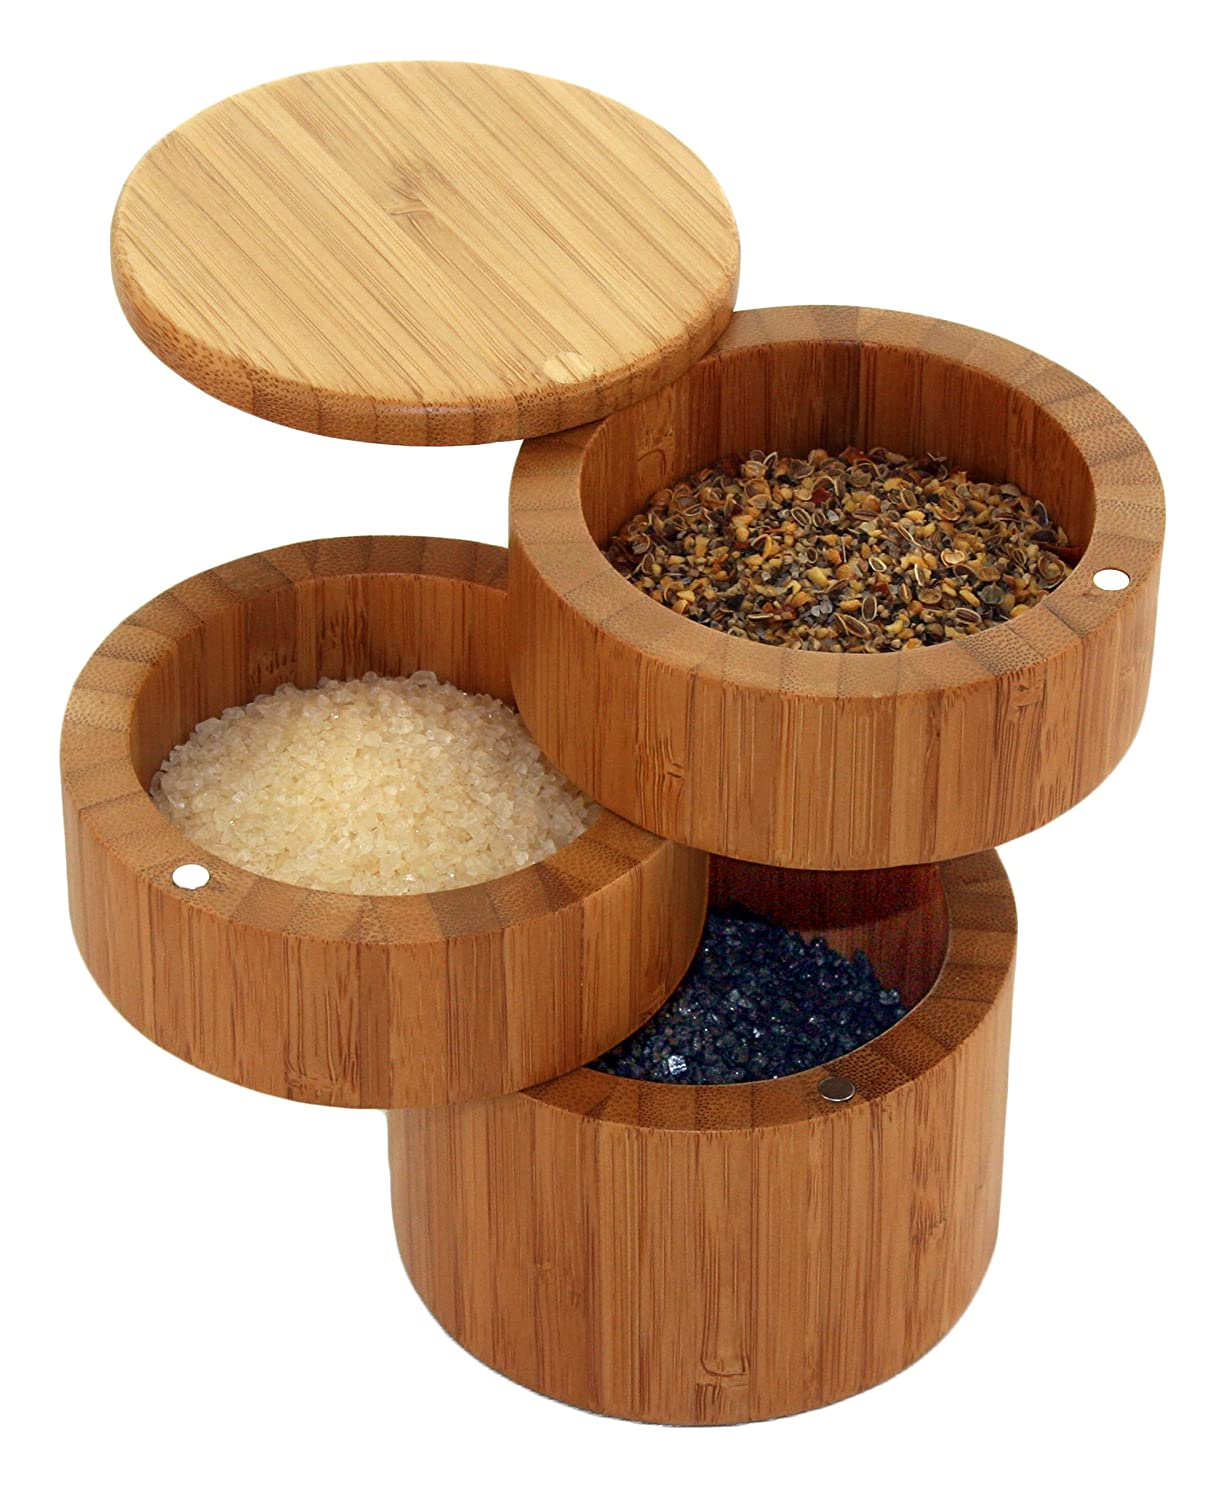 Gentil Amazon.com: Totally Bamboo Triple Salt Box, 100% Bamboo Container With  Magnetic Lid For Secure Strong Storage, This Wooden Box Has Three  Compartments For ...